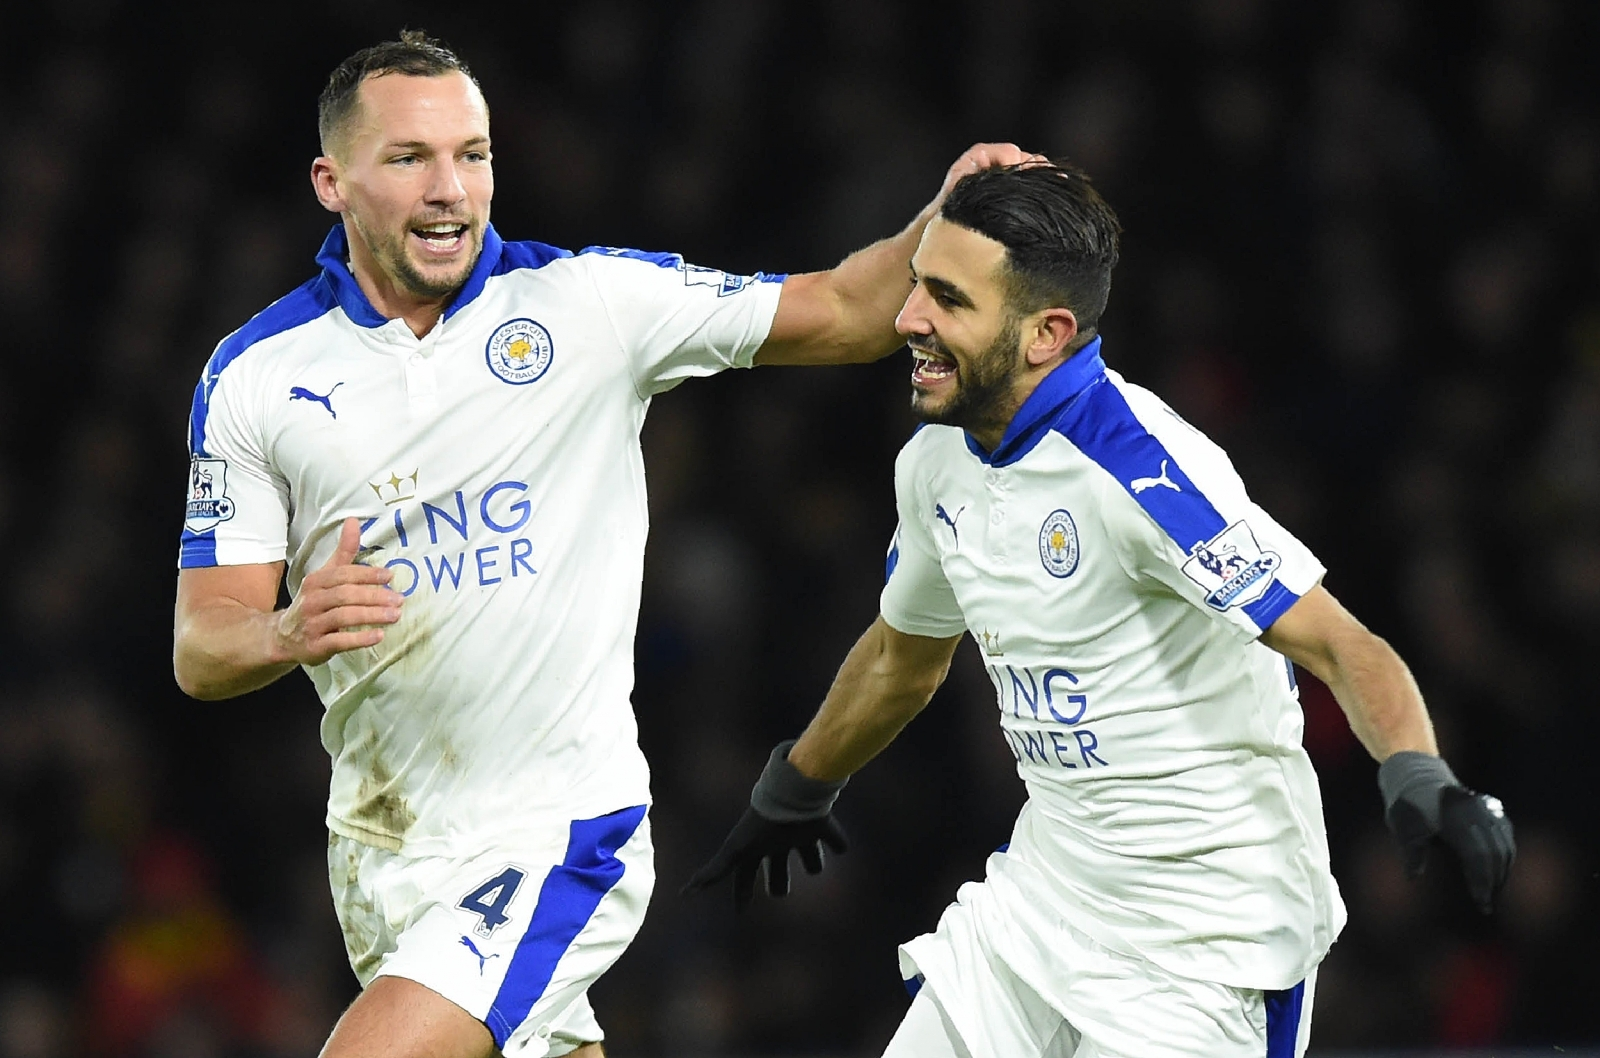 Danny Drinkwater and Riyad Mahrez